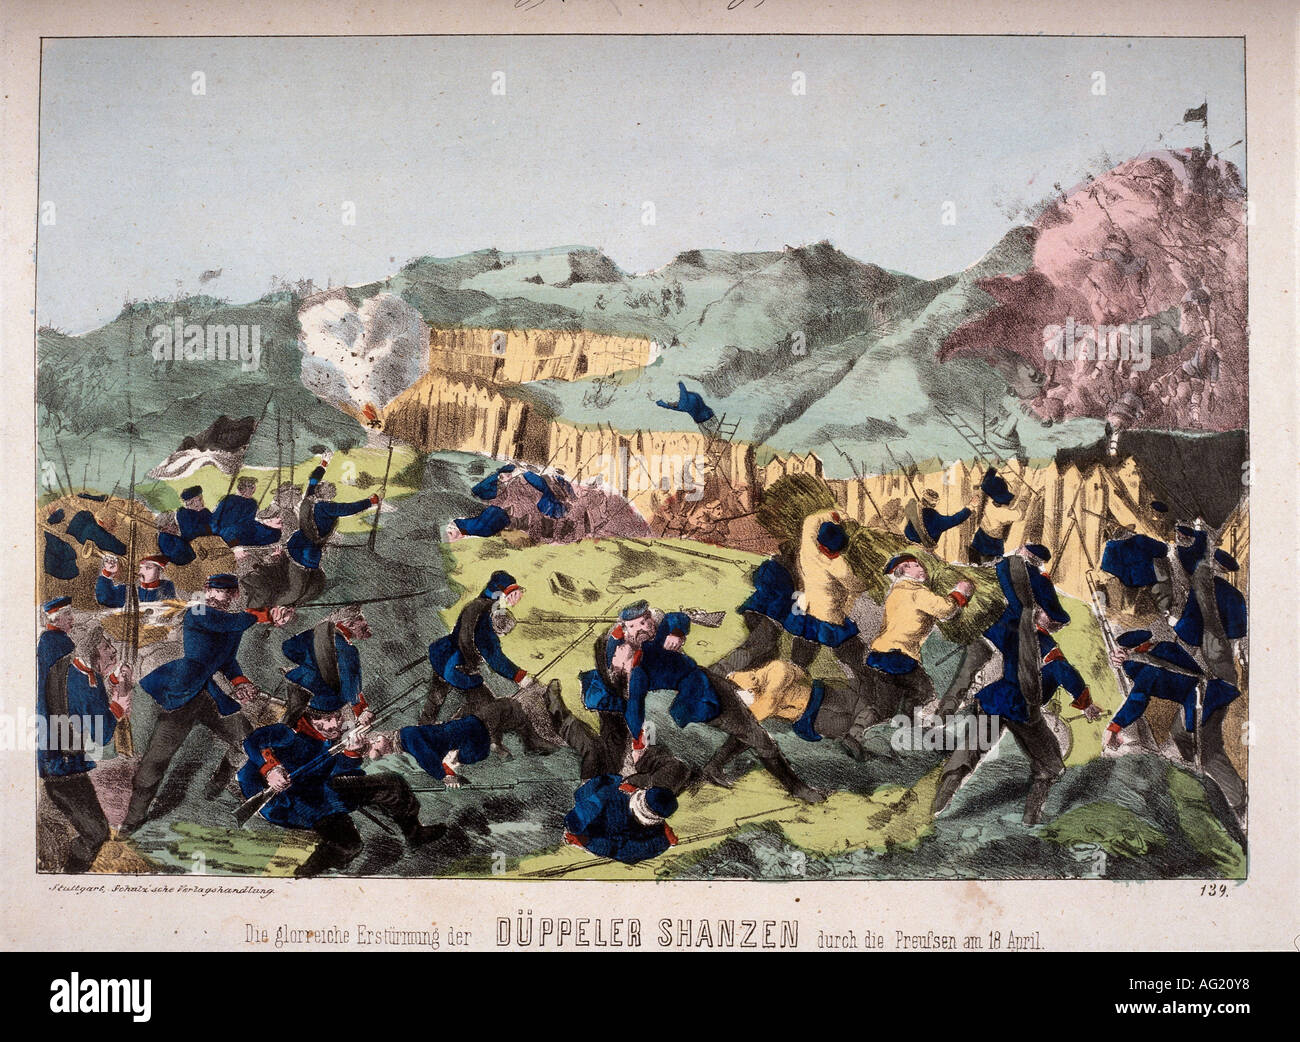 events, Second War of Schleswig 1864, Prussians storming the Dybbel trenches, 18.4.1864, engraving, published by Schulz, Stuttgart, 19th century, Danish Prussian War, Germany, Denmark, Prussia, battle, prussian soldiers, battle, infantry, sappers, attack, warfare, historic, historical, people, Additional-Rights-Clearances-NA - Stock Image